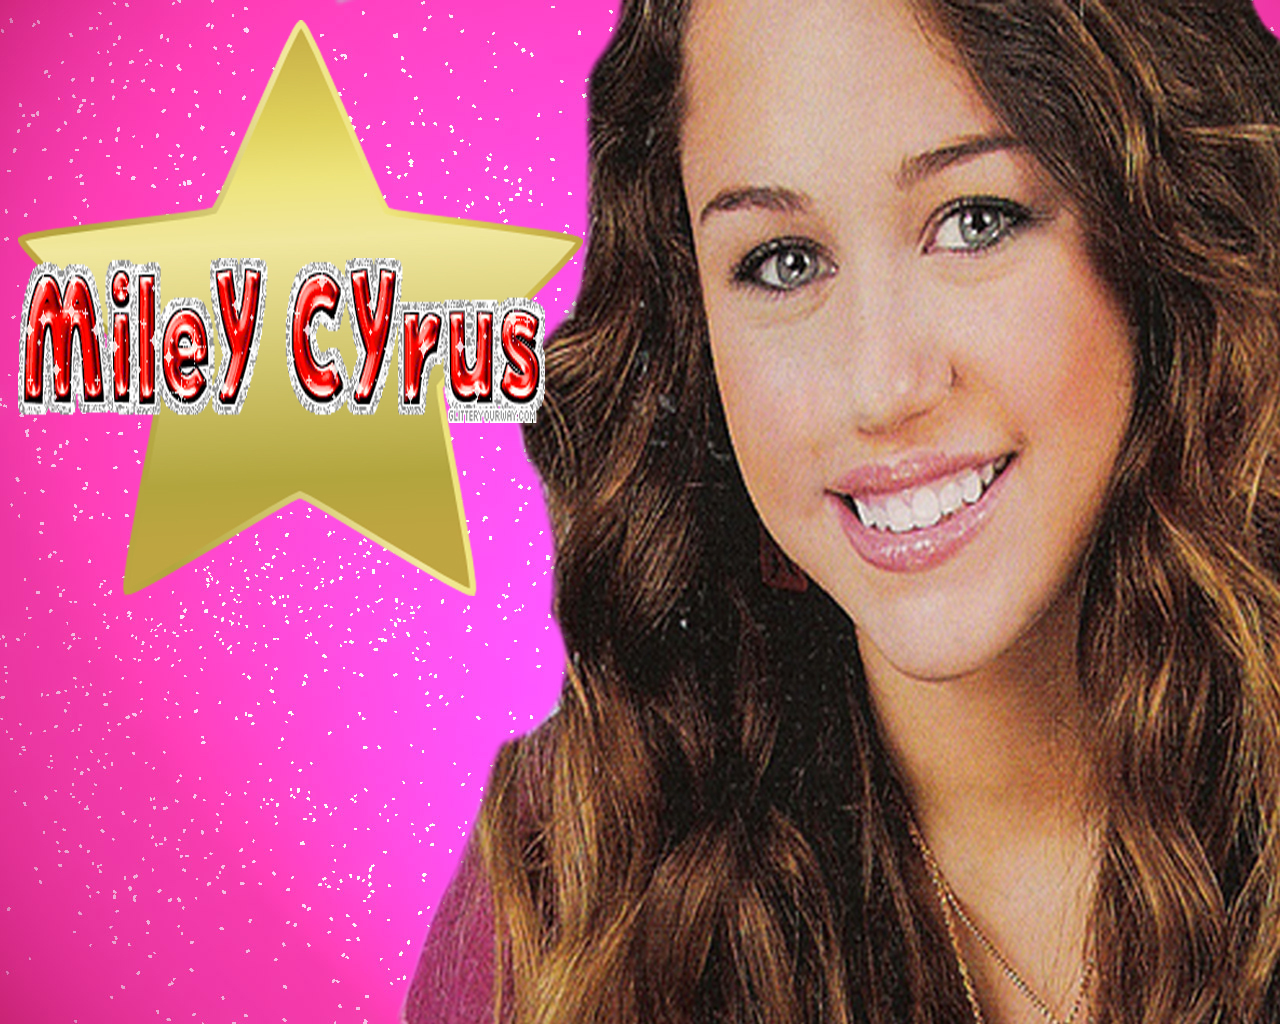 miley cyrus pics by Pearl